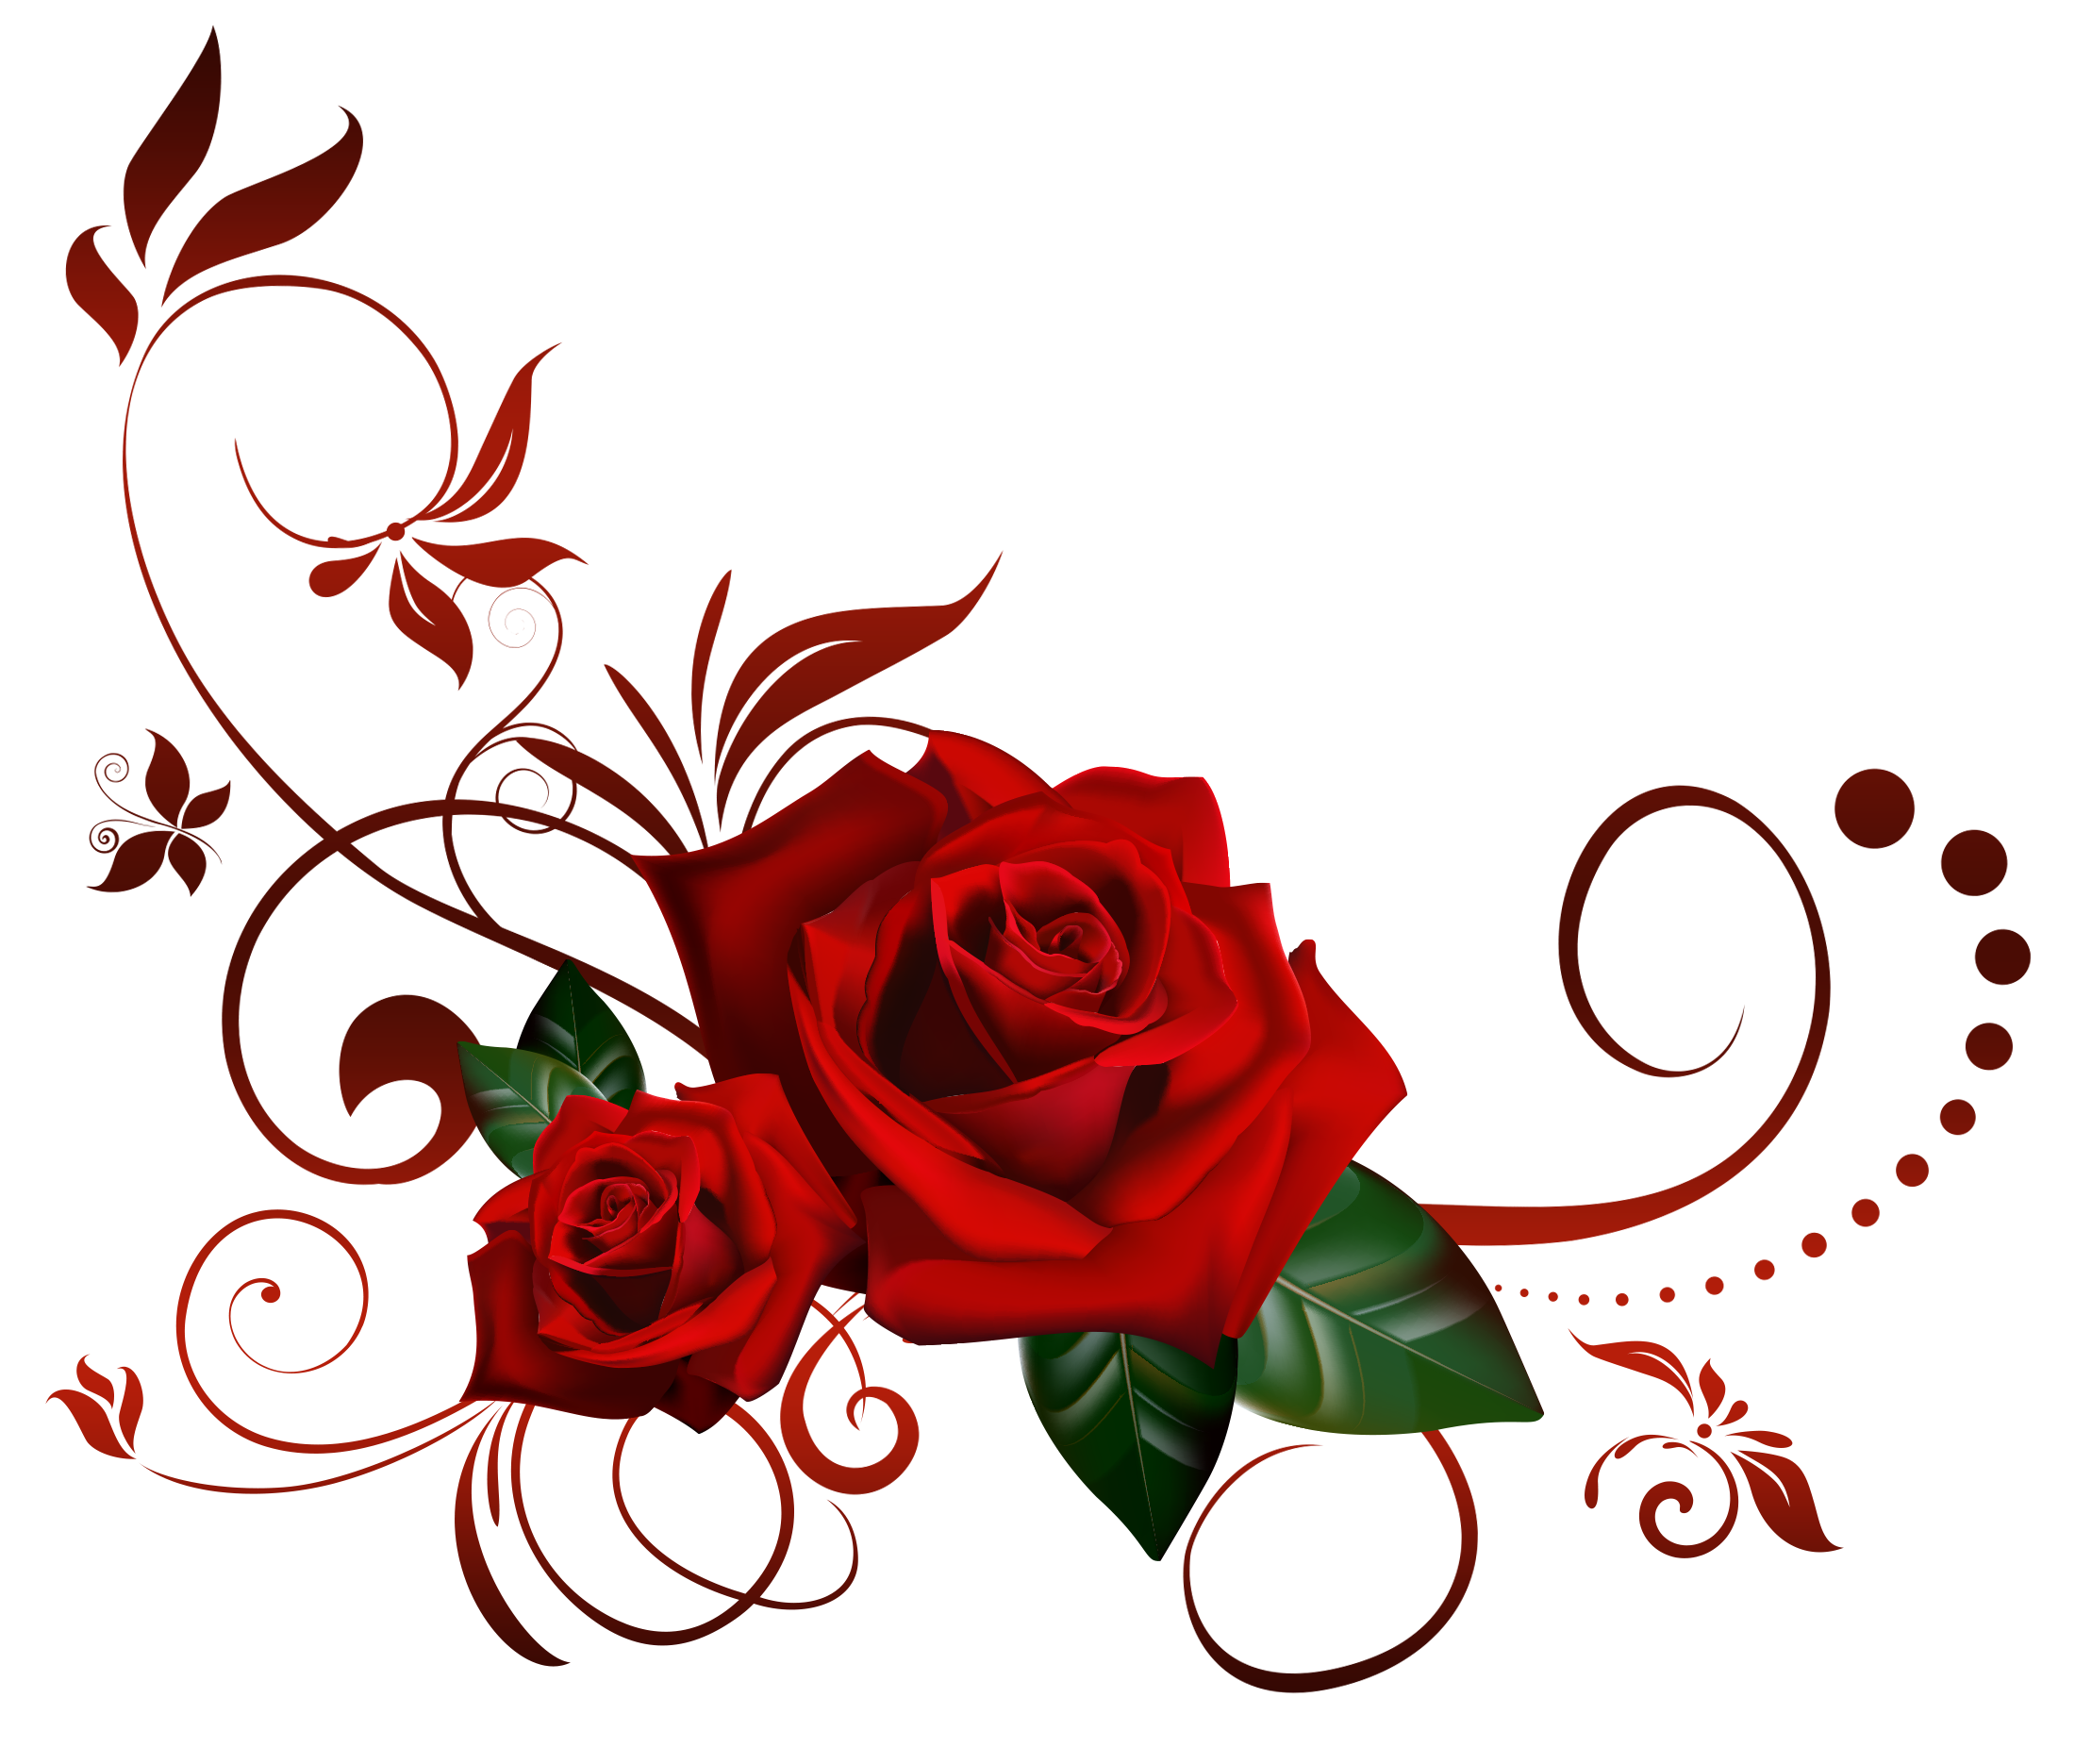 Red Rose Png Flowers Images And Clipart Transparent Background Red Rose Png Flower Art Red Roses